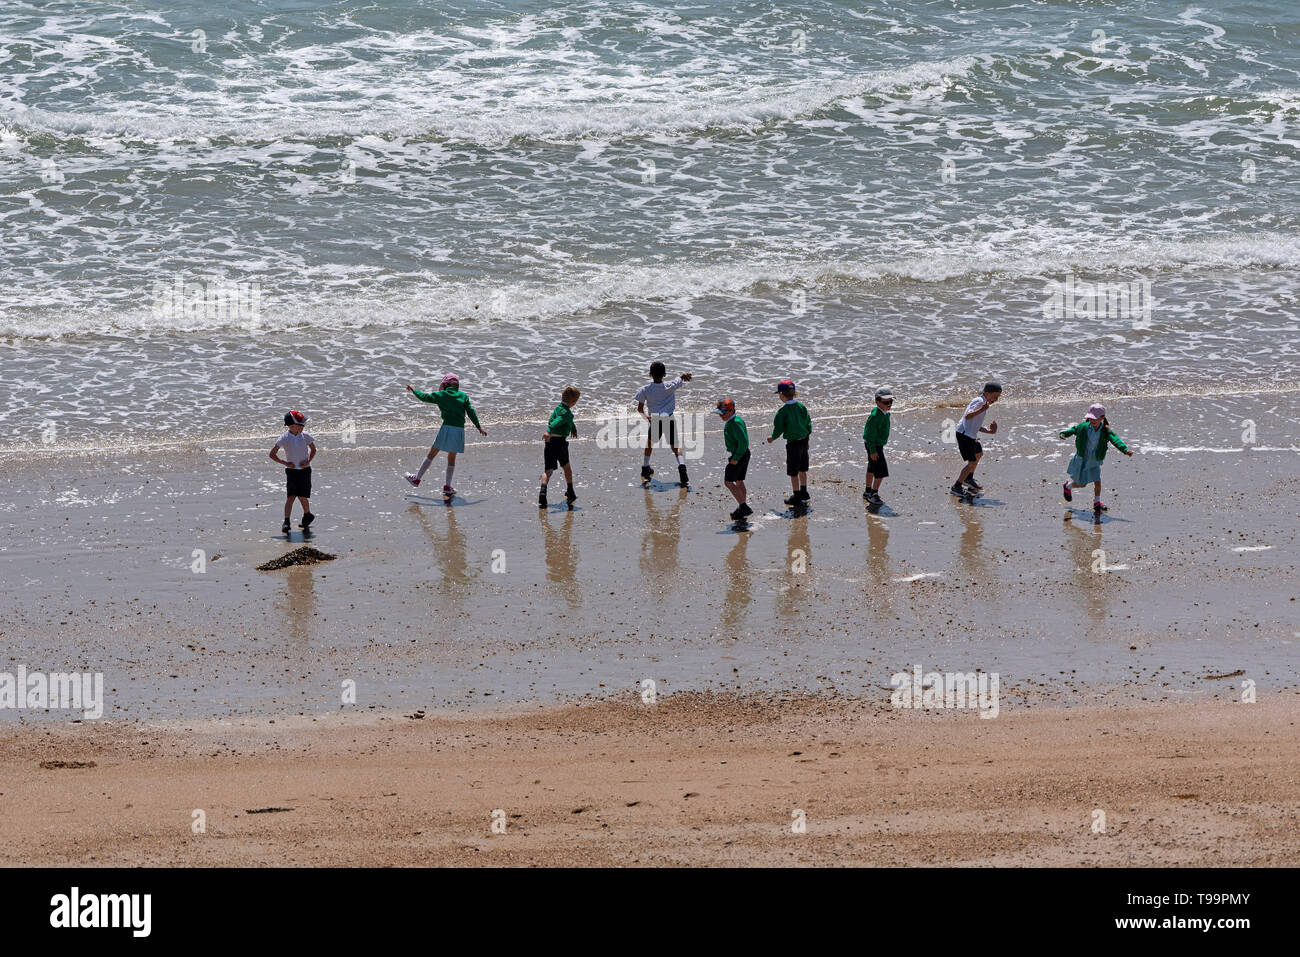 Southsea, Portsmouth, England, UK. May 2019.  A line of school children playing on the  beach with a backdrop of waves at Southsea an English resort. - Stock Image